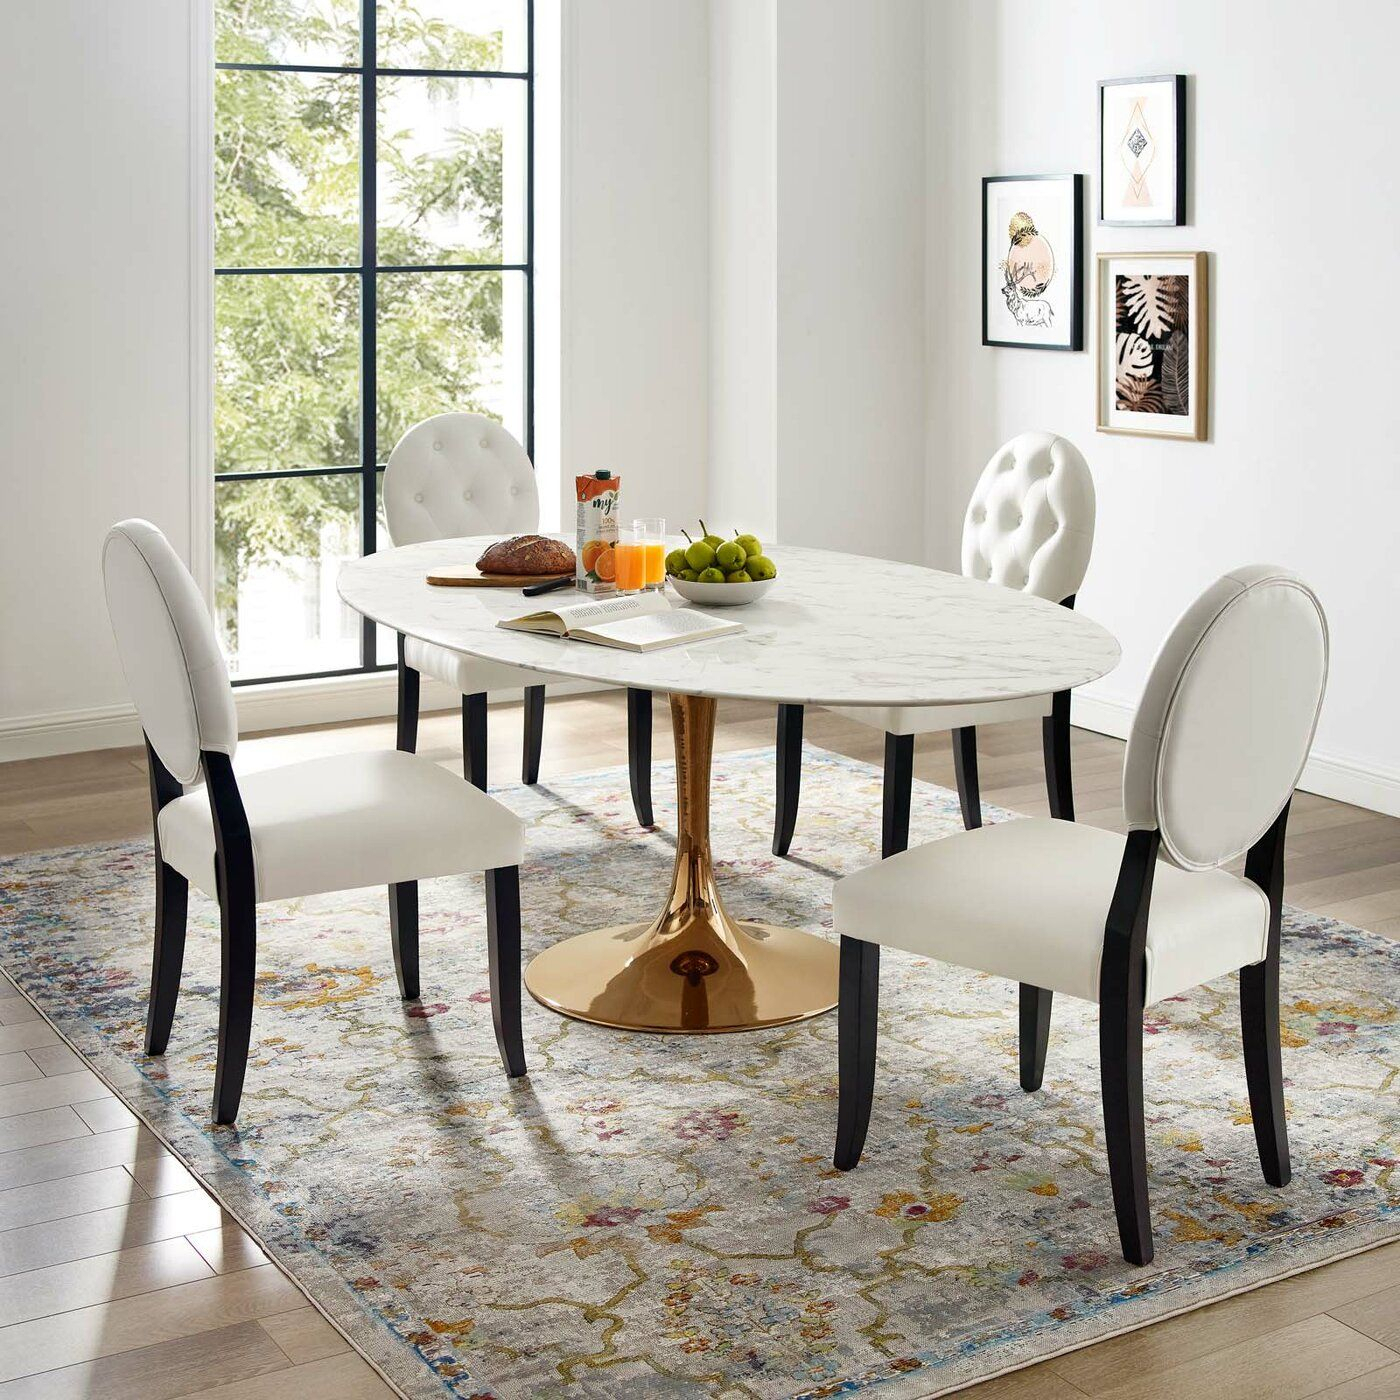 Kylee Artificial Marble Oval Shaped Dining Table Pertaining To Latest Chapman Marble Oval Dining Tables (View 6 of 25)